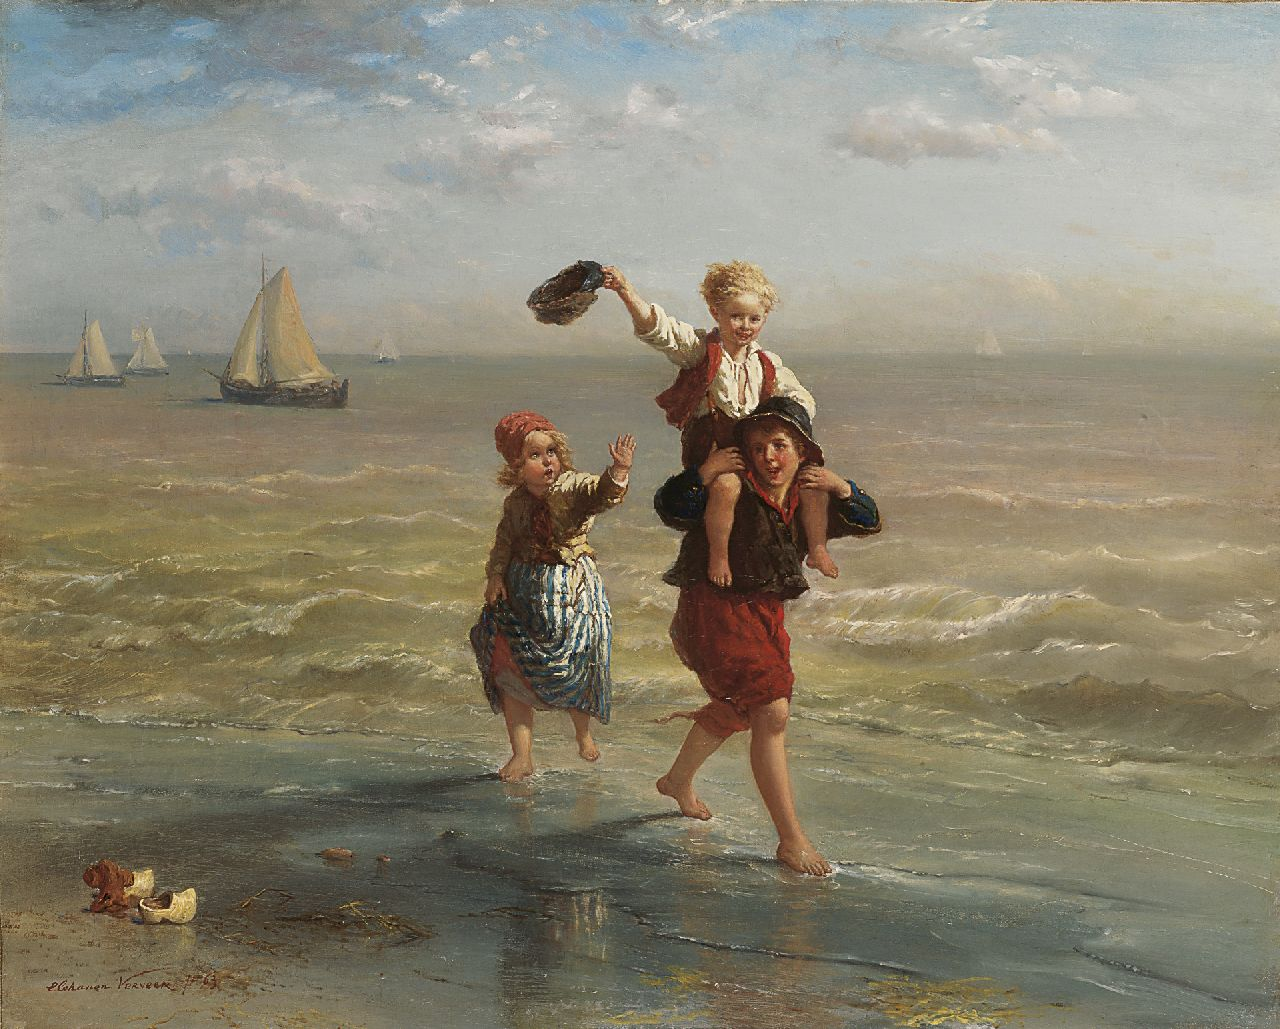 Verveer E.L.  | 'Elchanon' Leonardus Verveer, Children playing in the surf, oil on canvas 60.2 x 75.2 cm, signed l.l. and dated '63